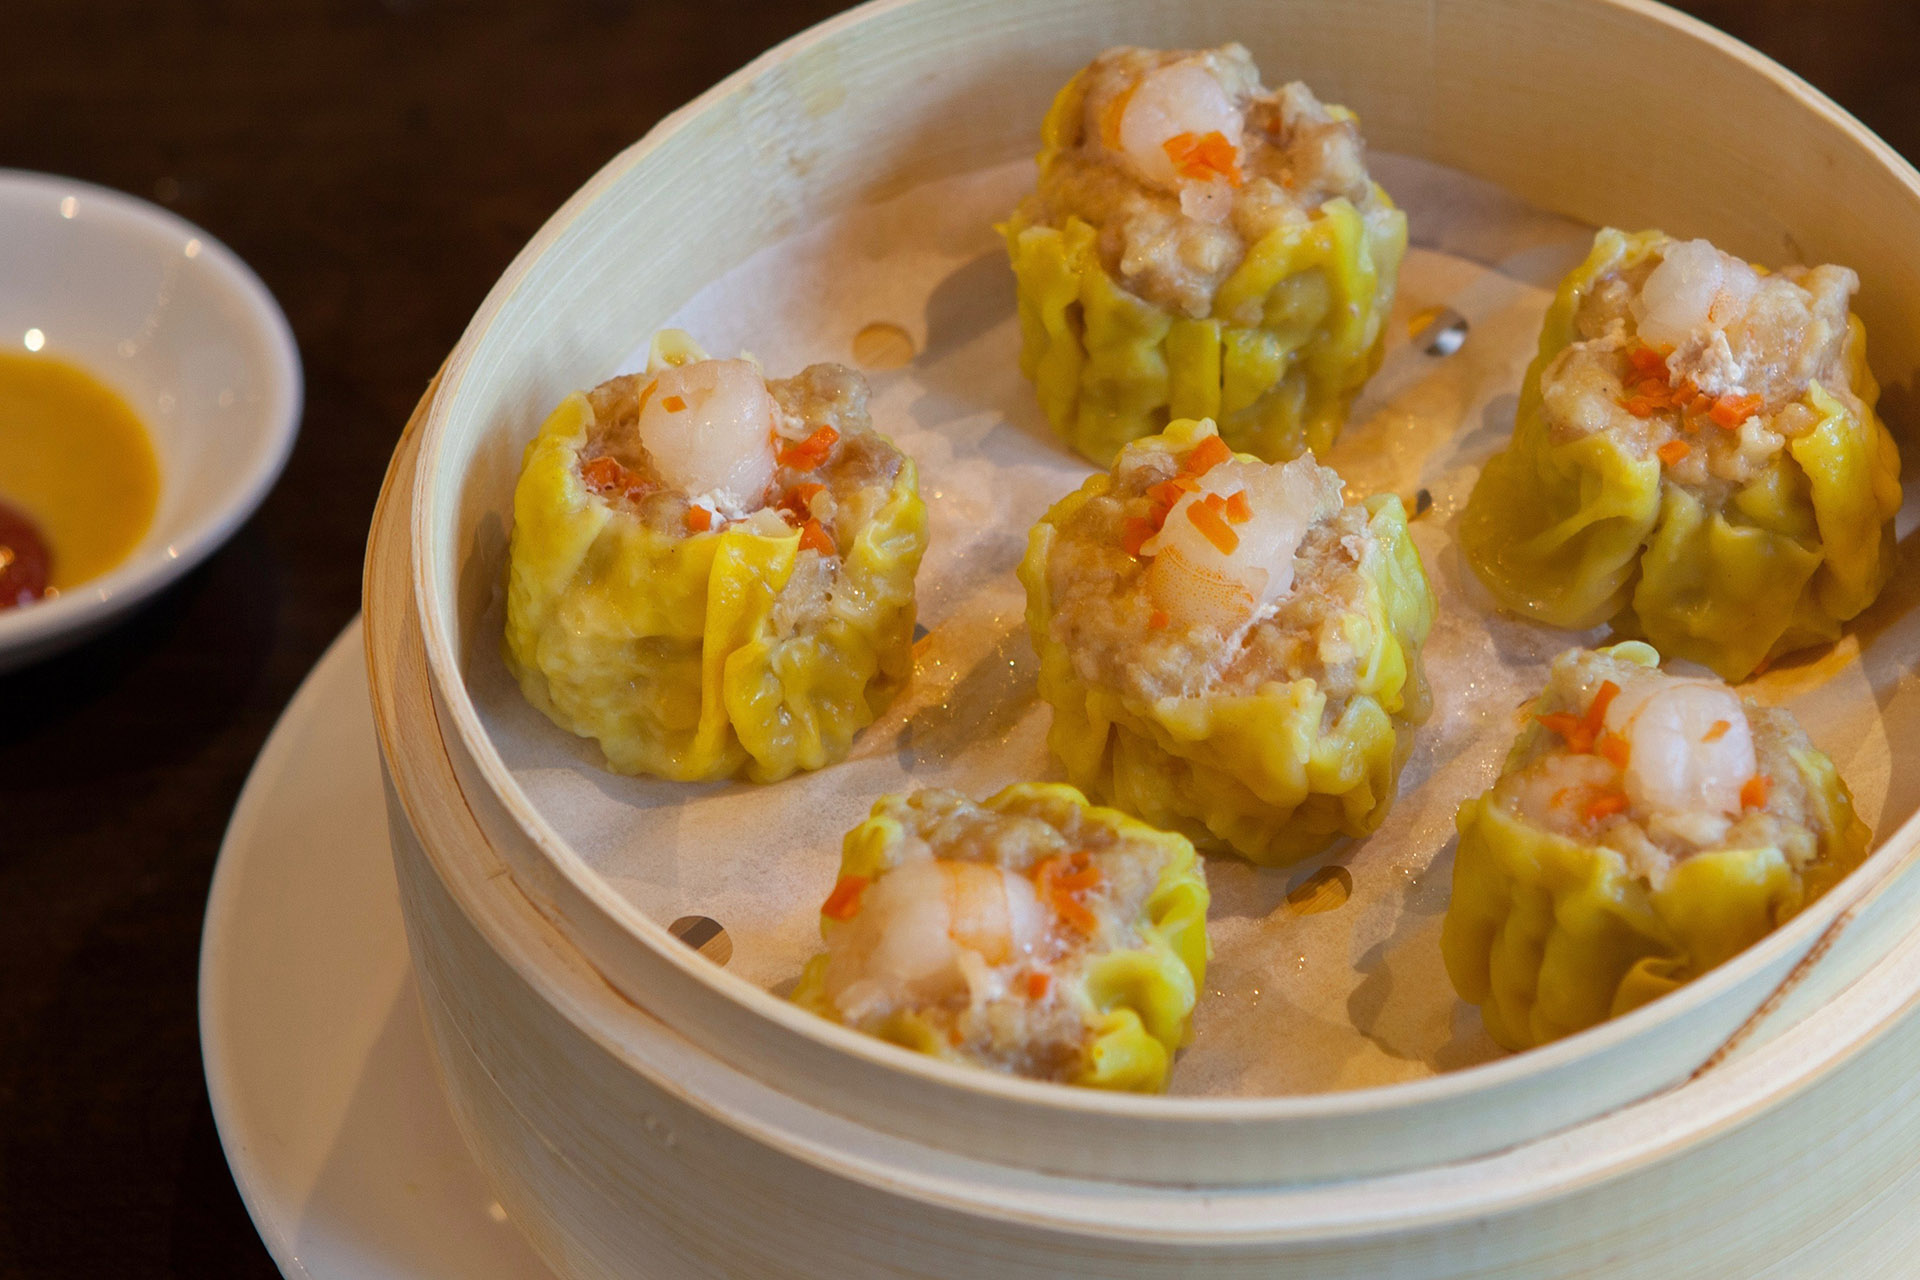 Shrimp & Chicken Shao Mai [6] at Lee Chen Asian Bistro